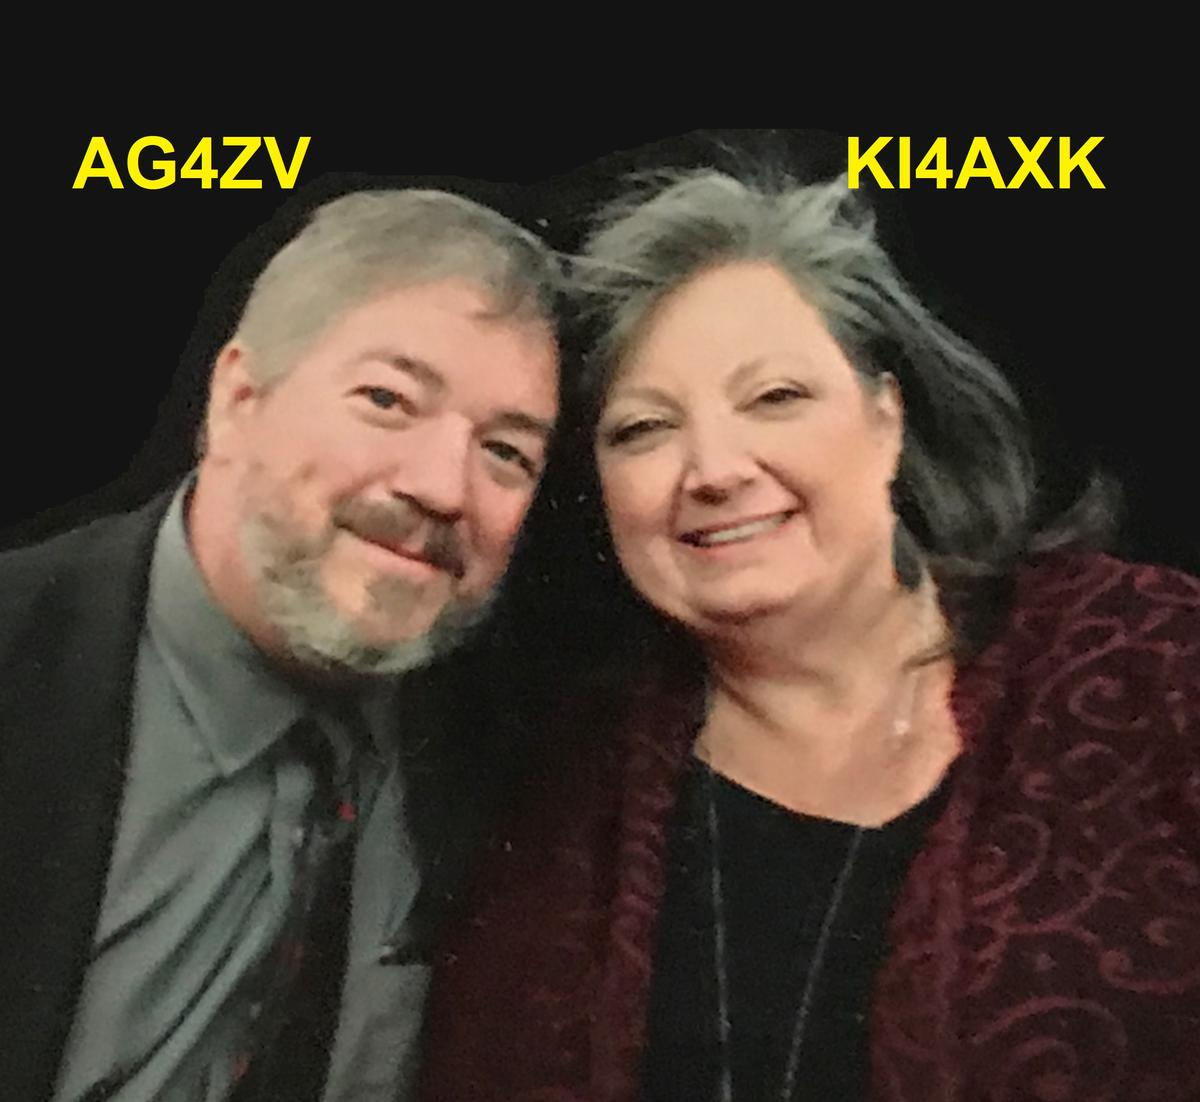 Primary Image for AG4ZV